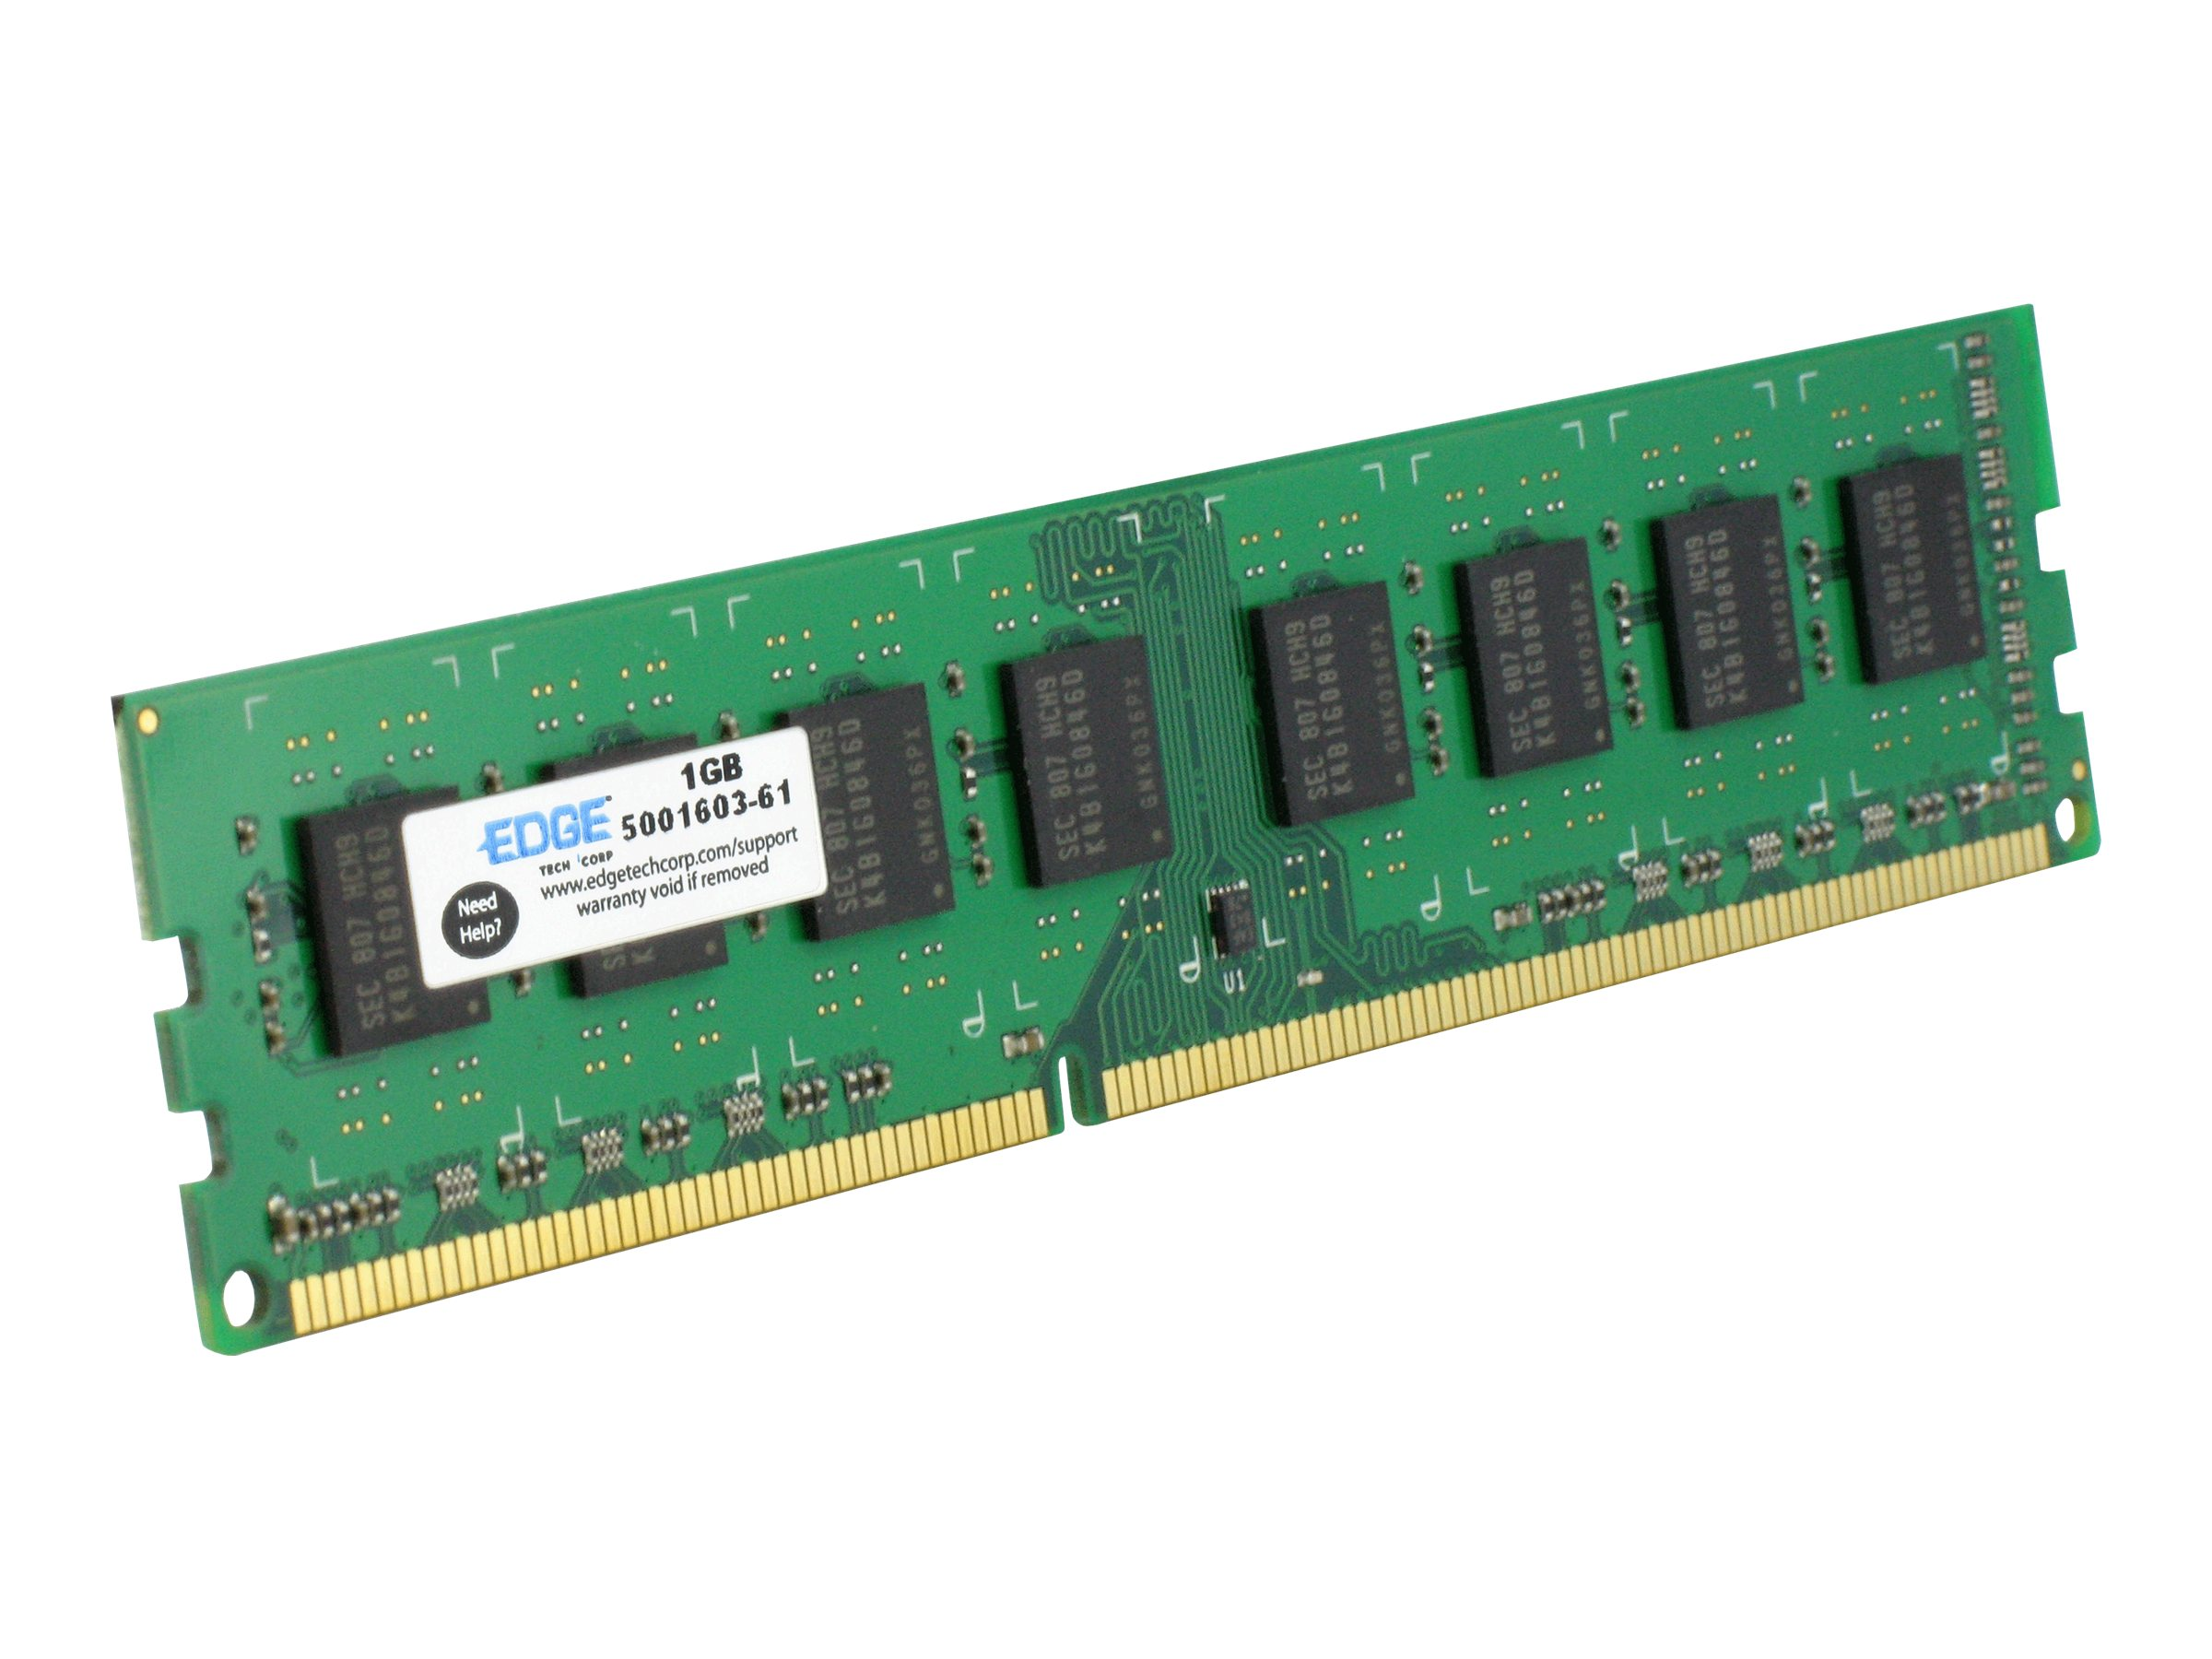 Edge 32GB PC3-10600 240-pin DDR3 SDRAM DIMM, PE234515